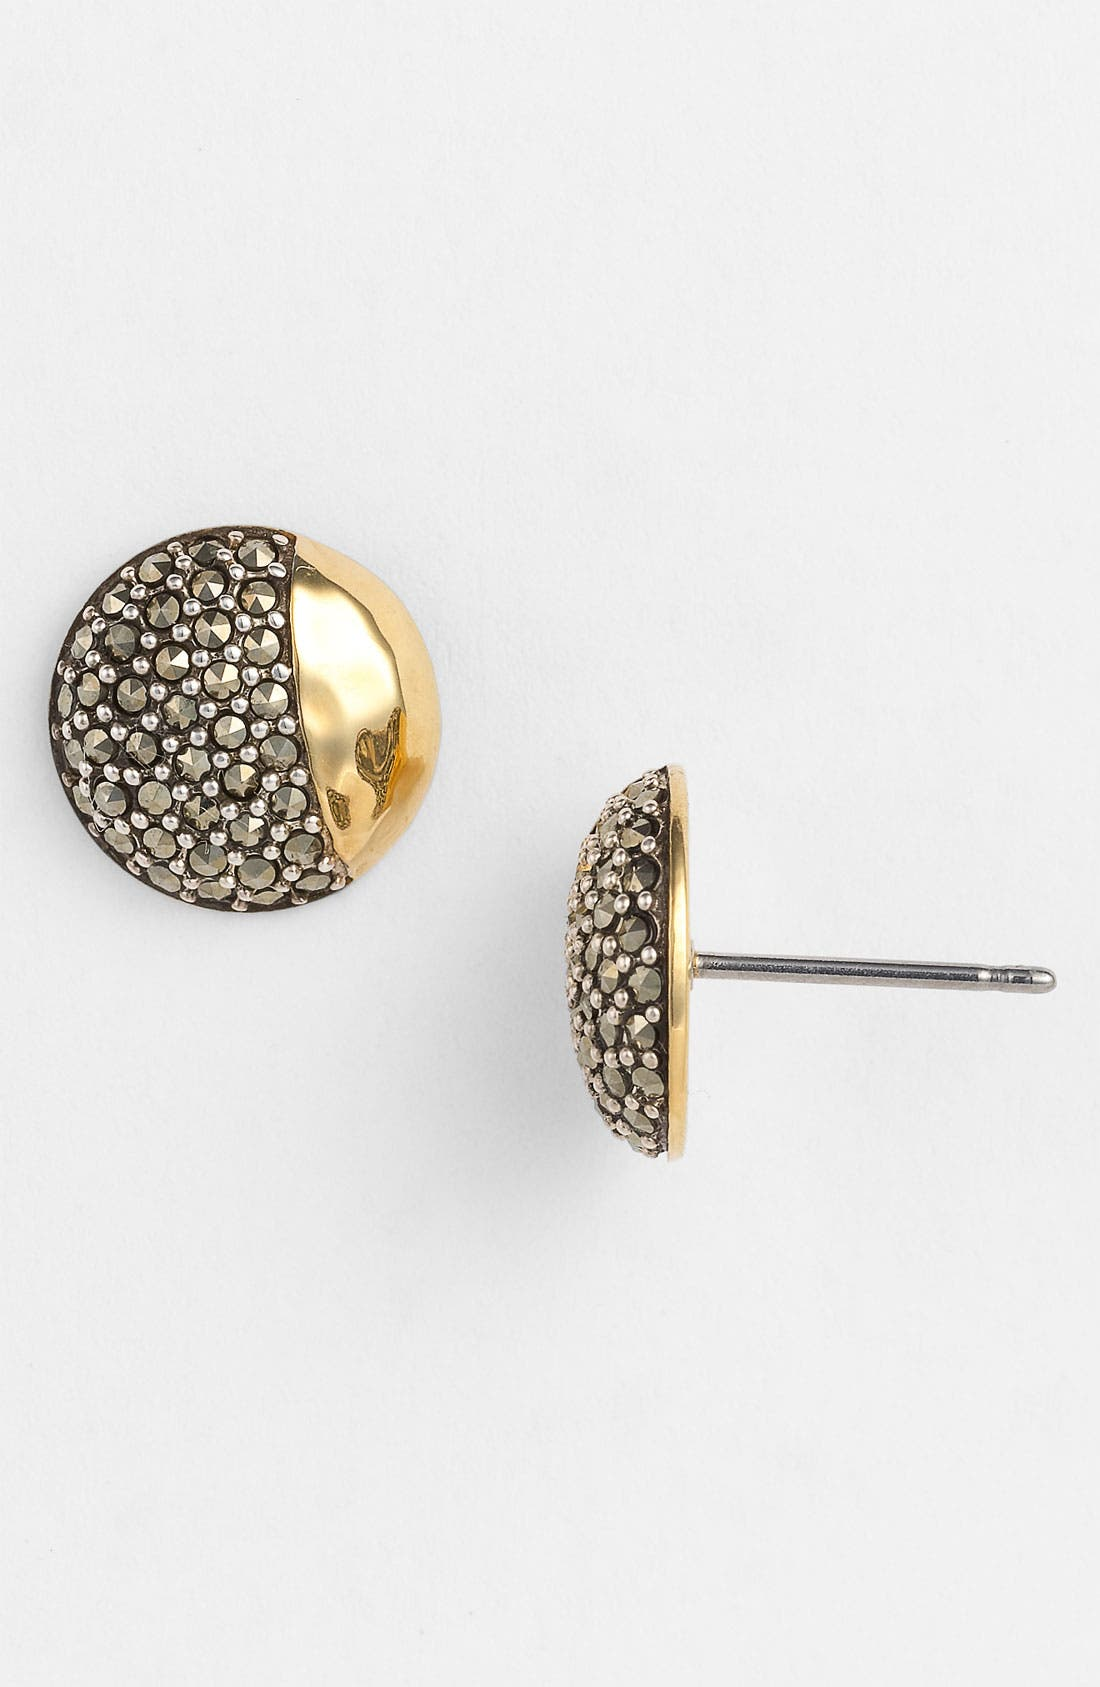 Alternate Image 1 Selected - Judith Jack 'Gold Sea' Button Stud Earrings